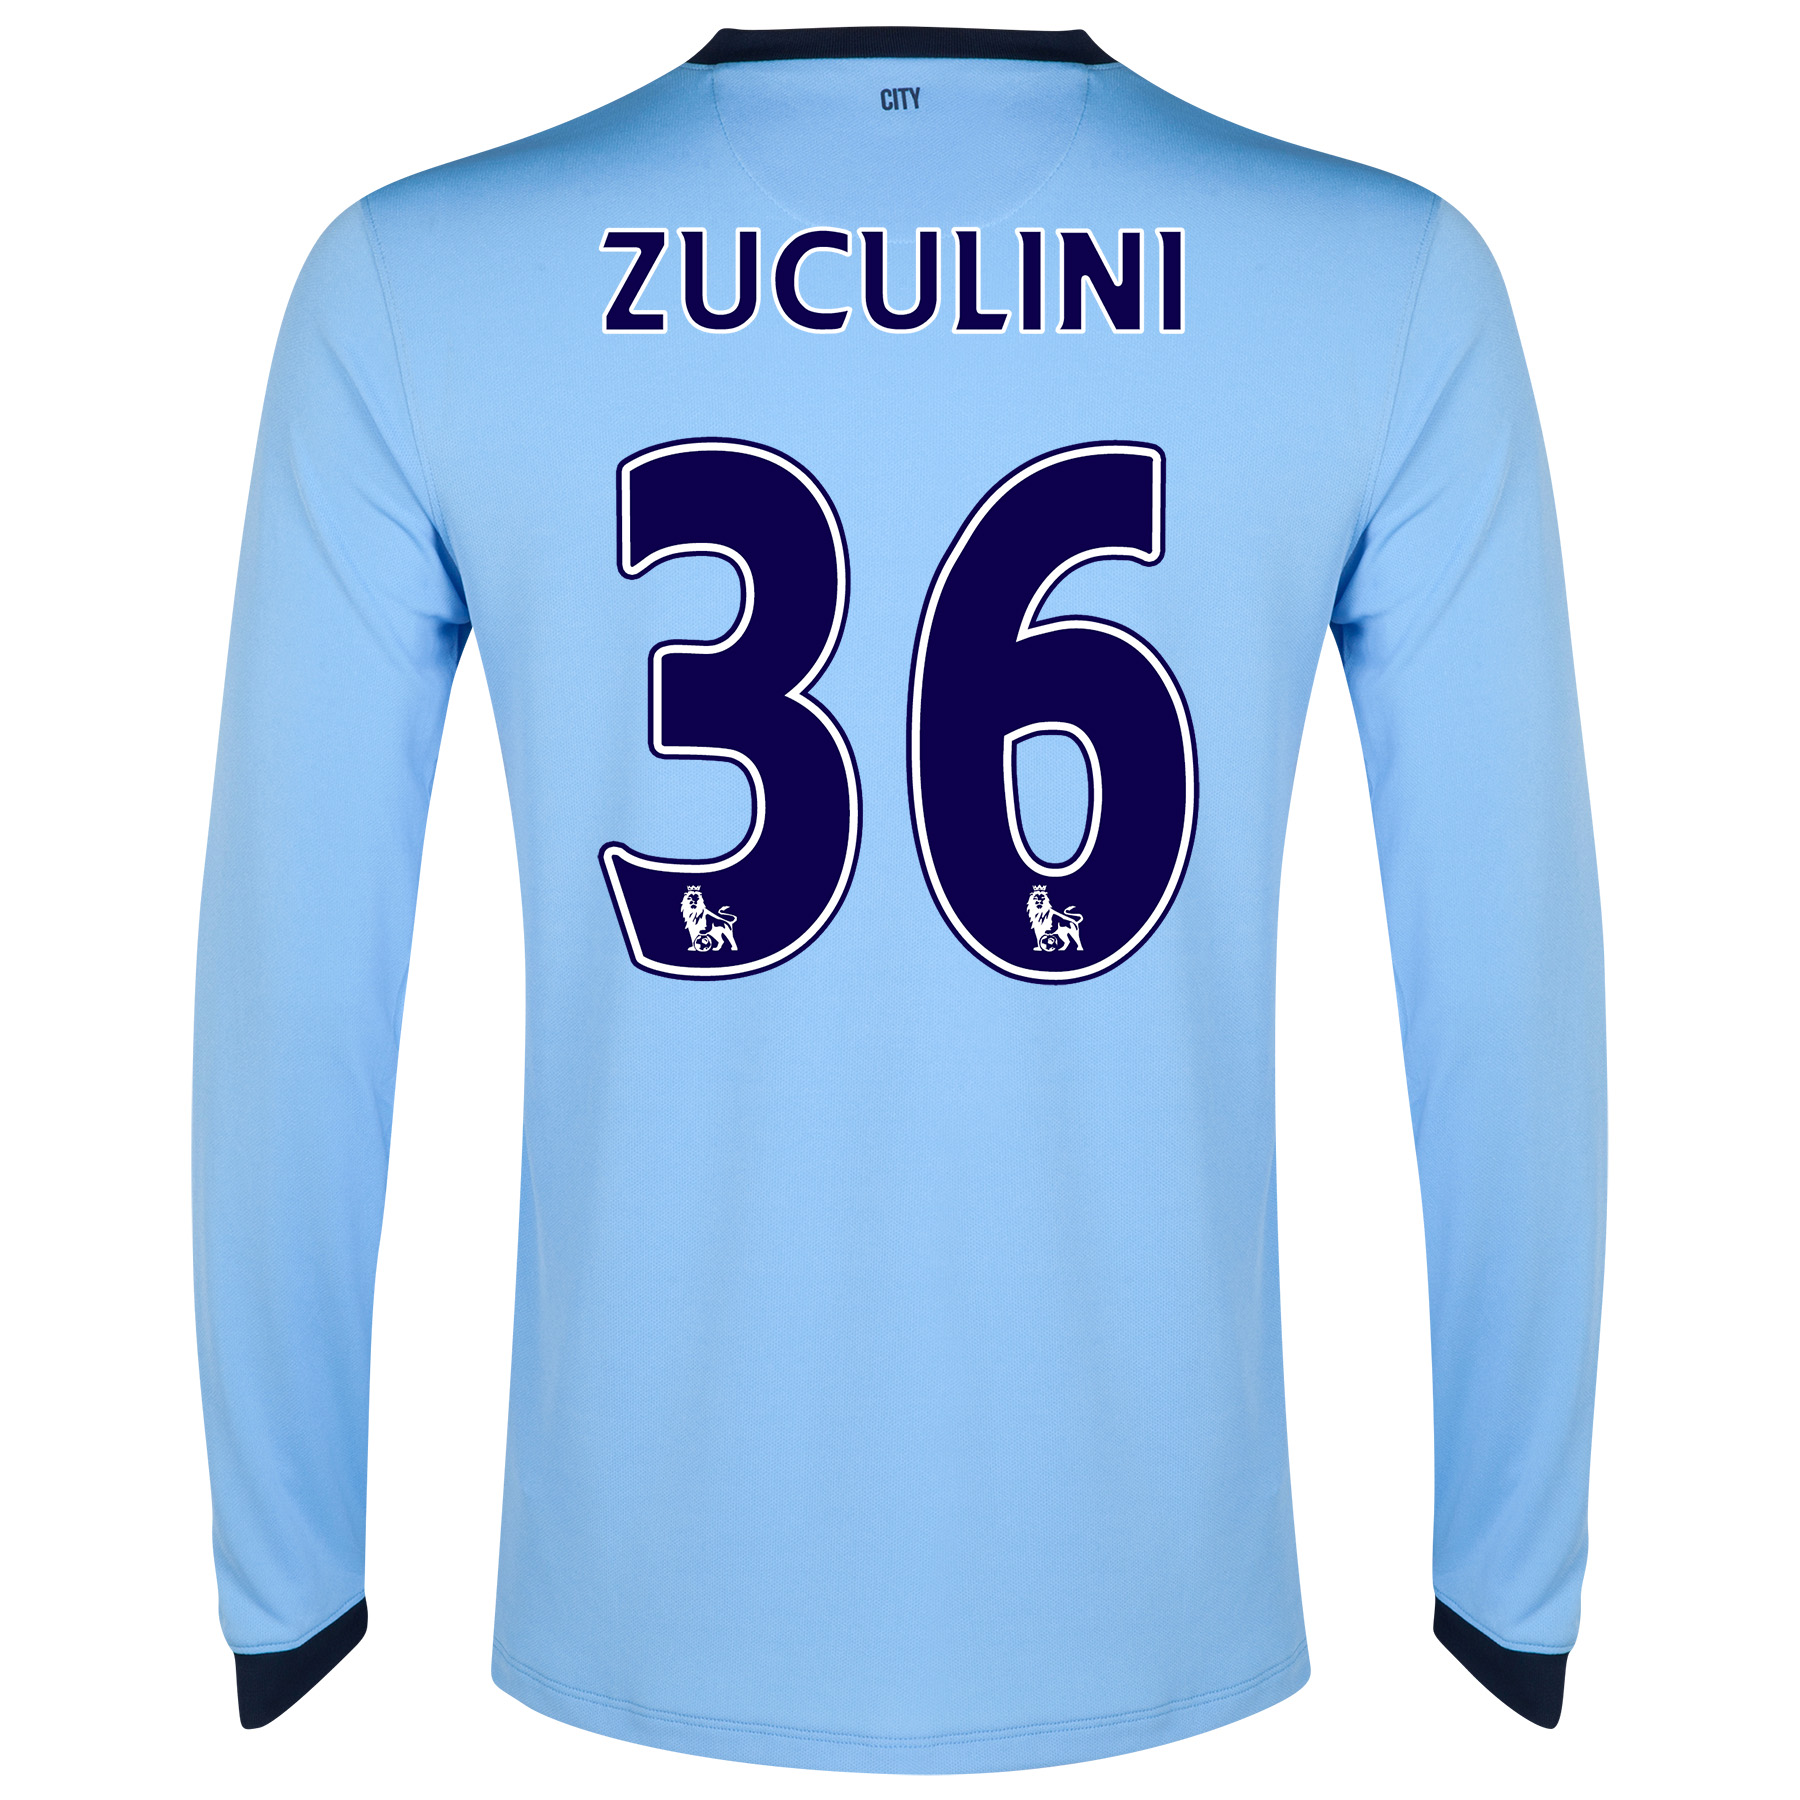 Manchester City Home Shirt 2014/15 - Long Sleeve - Kids Sky Blue with Zuculini 36 printing